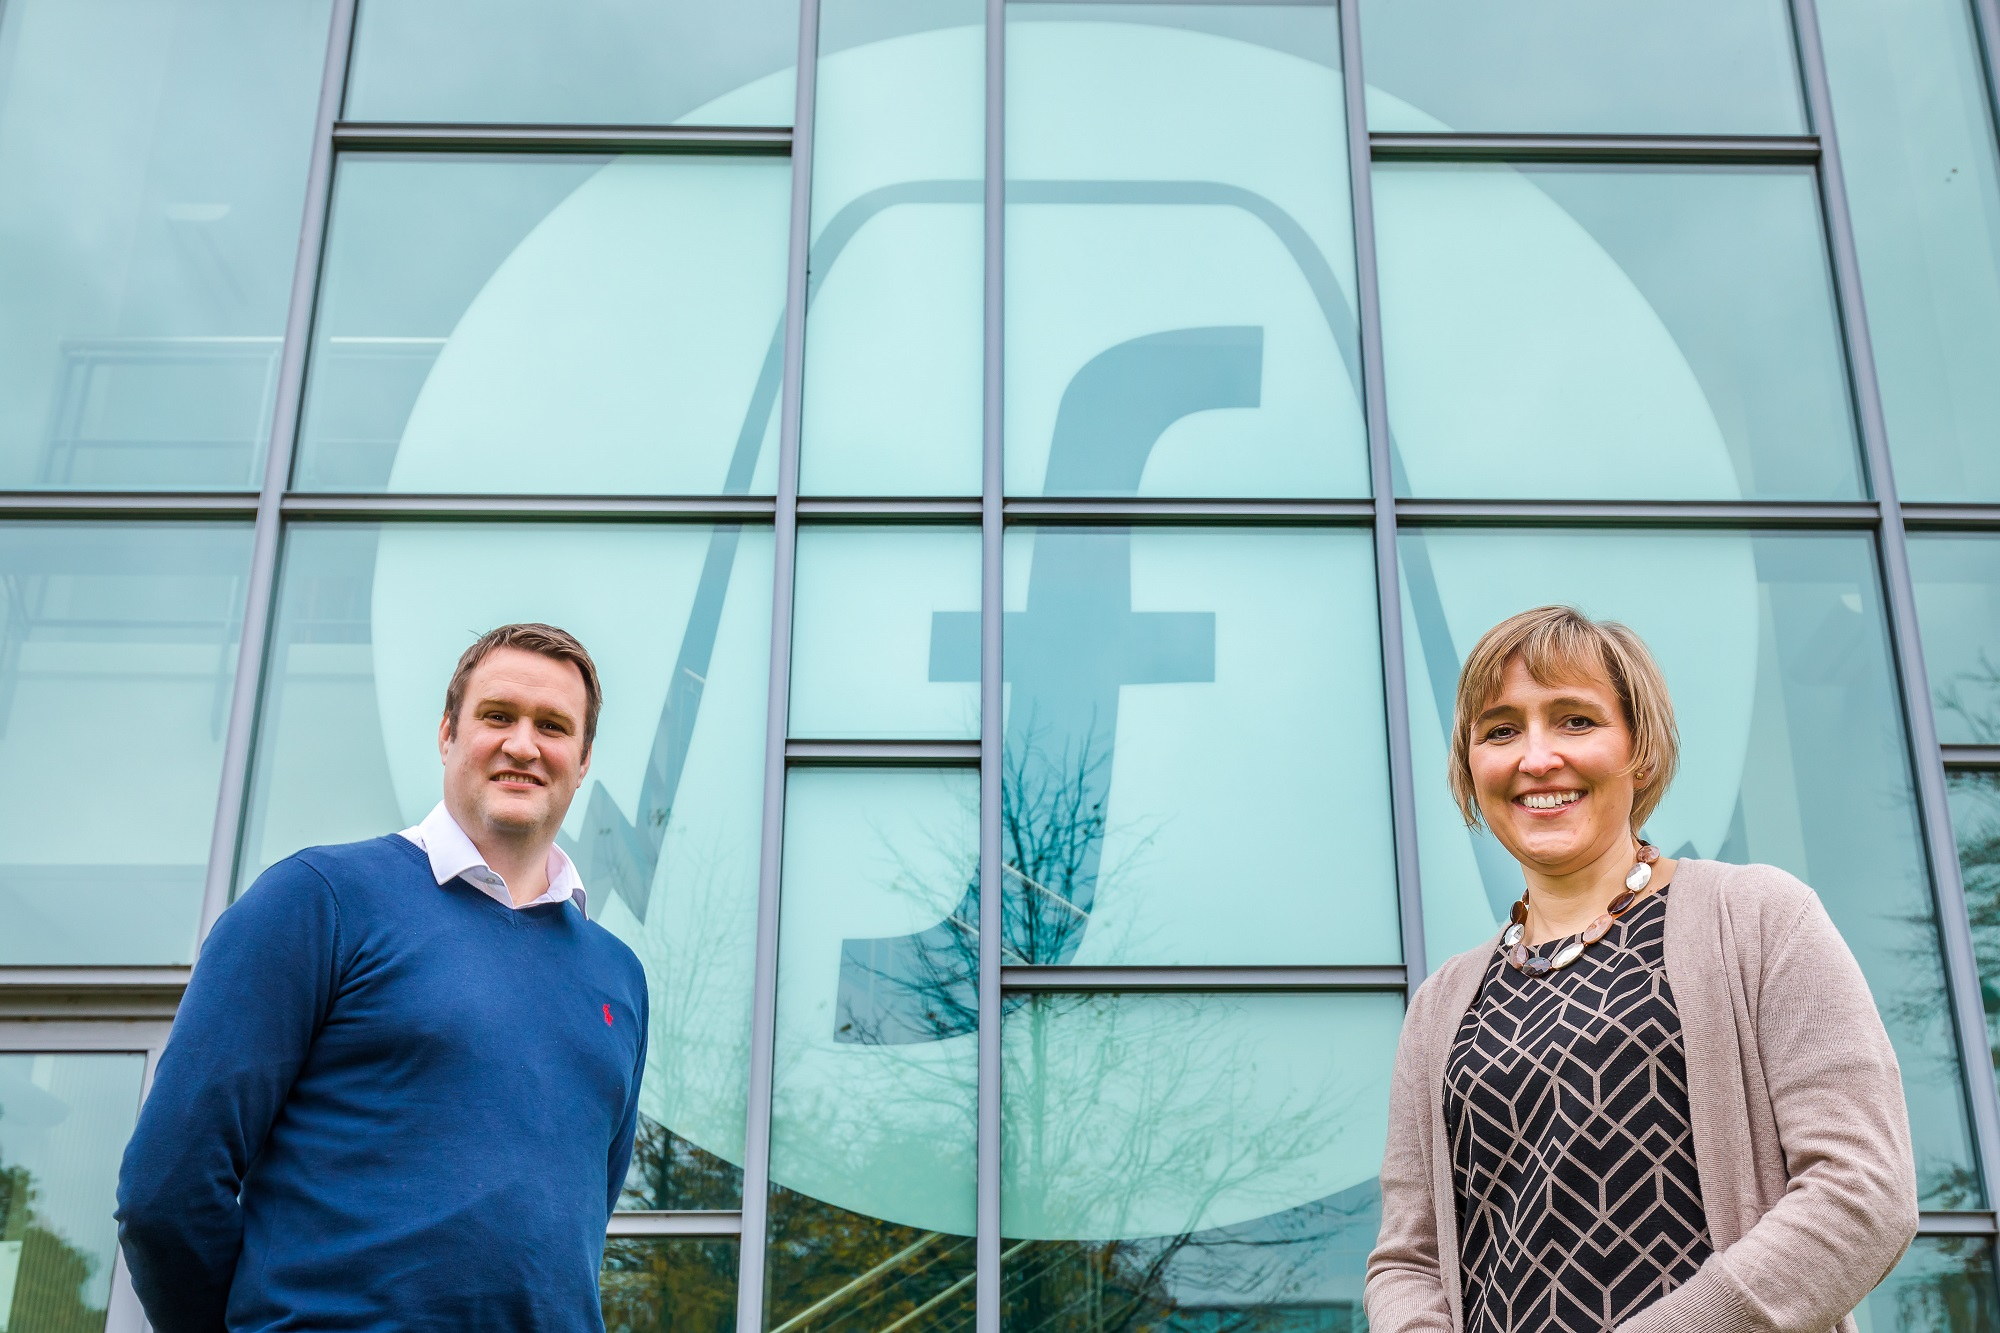 Filtronic, NETPark in Sedgefield. Sarah Slaven (MD of Business Durham) and Michael Tyerman (CFO at Filtronic)